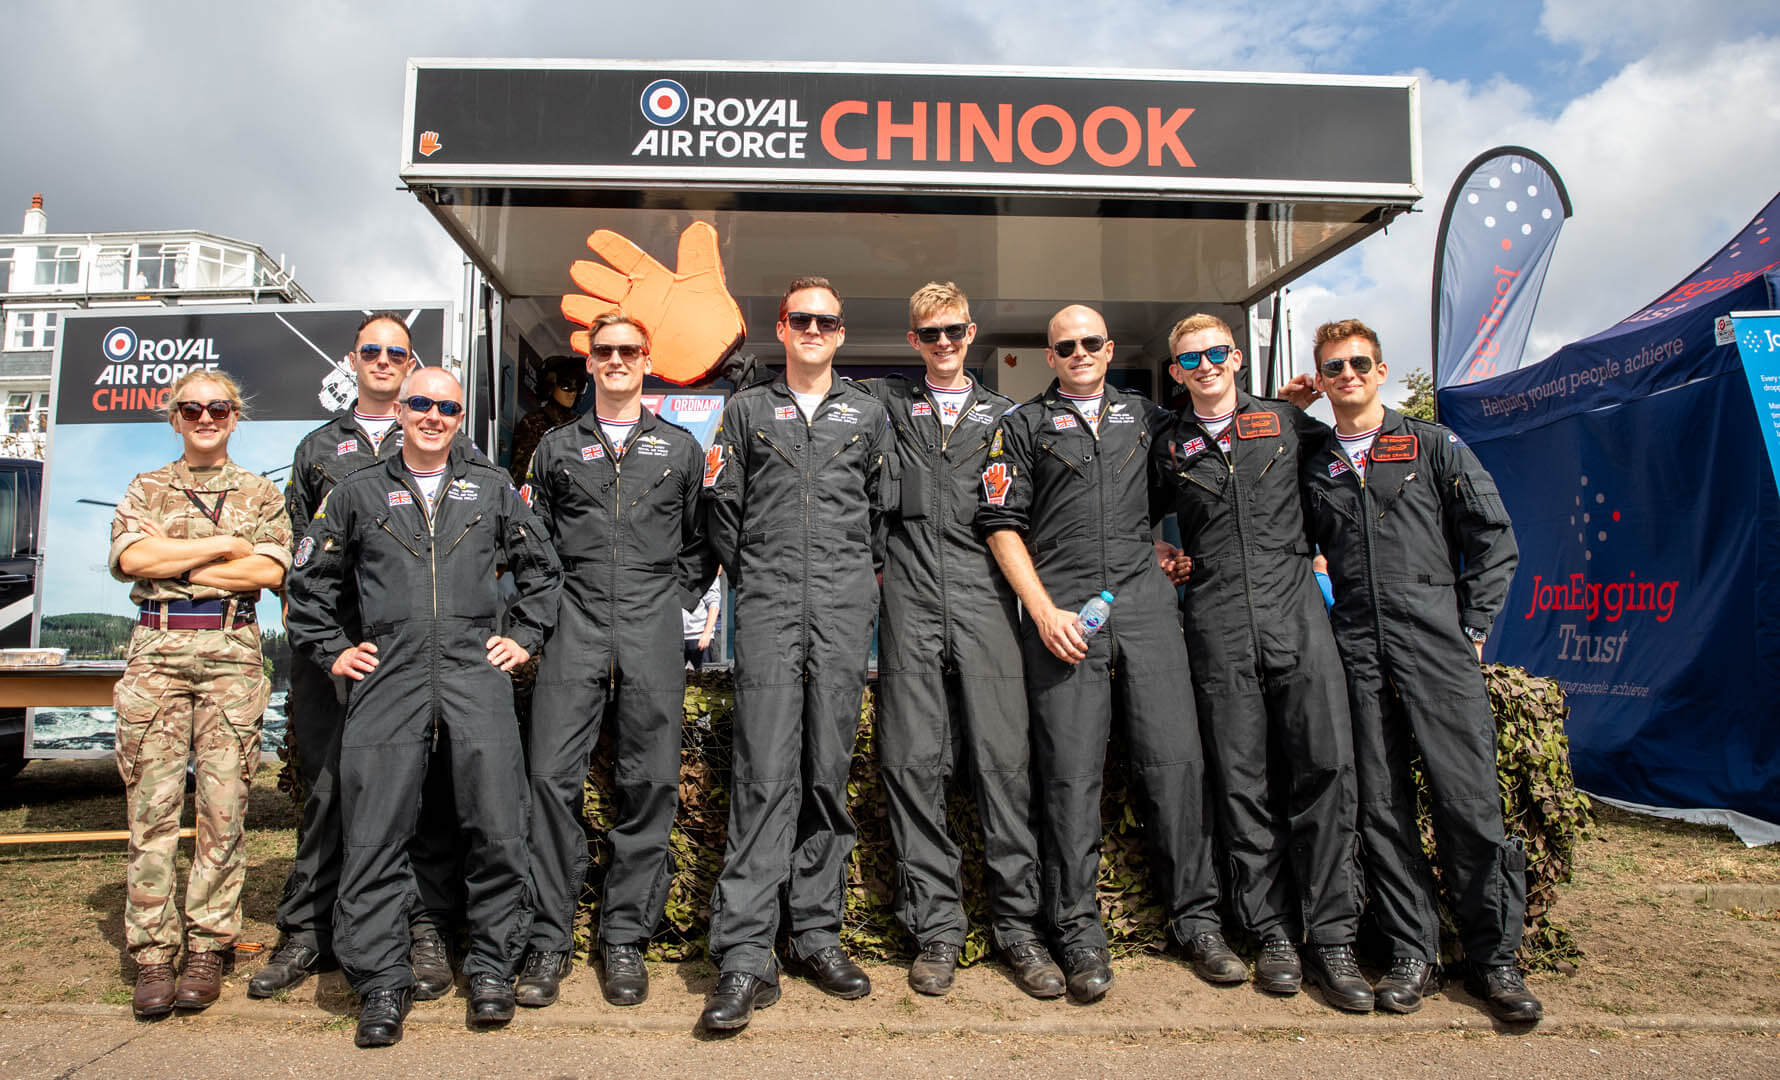 The RAF chinook team posing in front of their stand at the air show